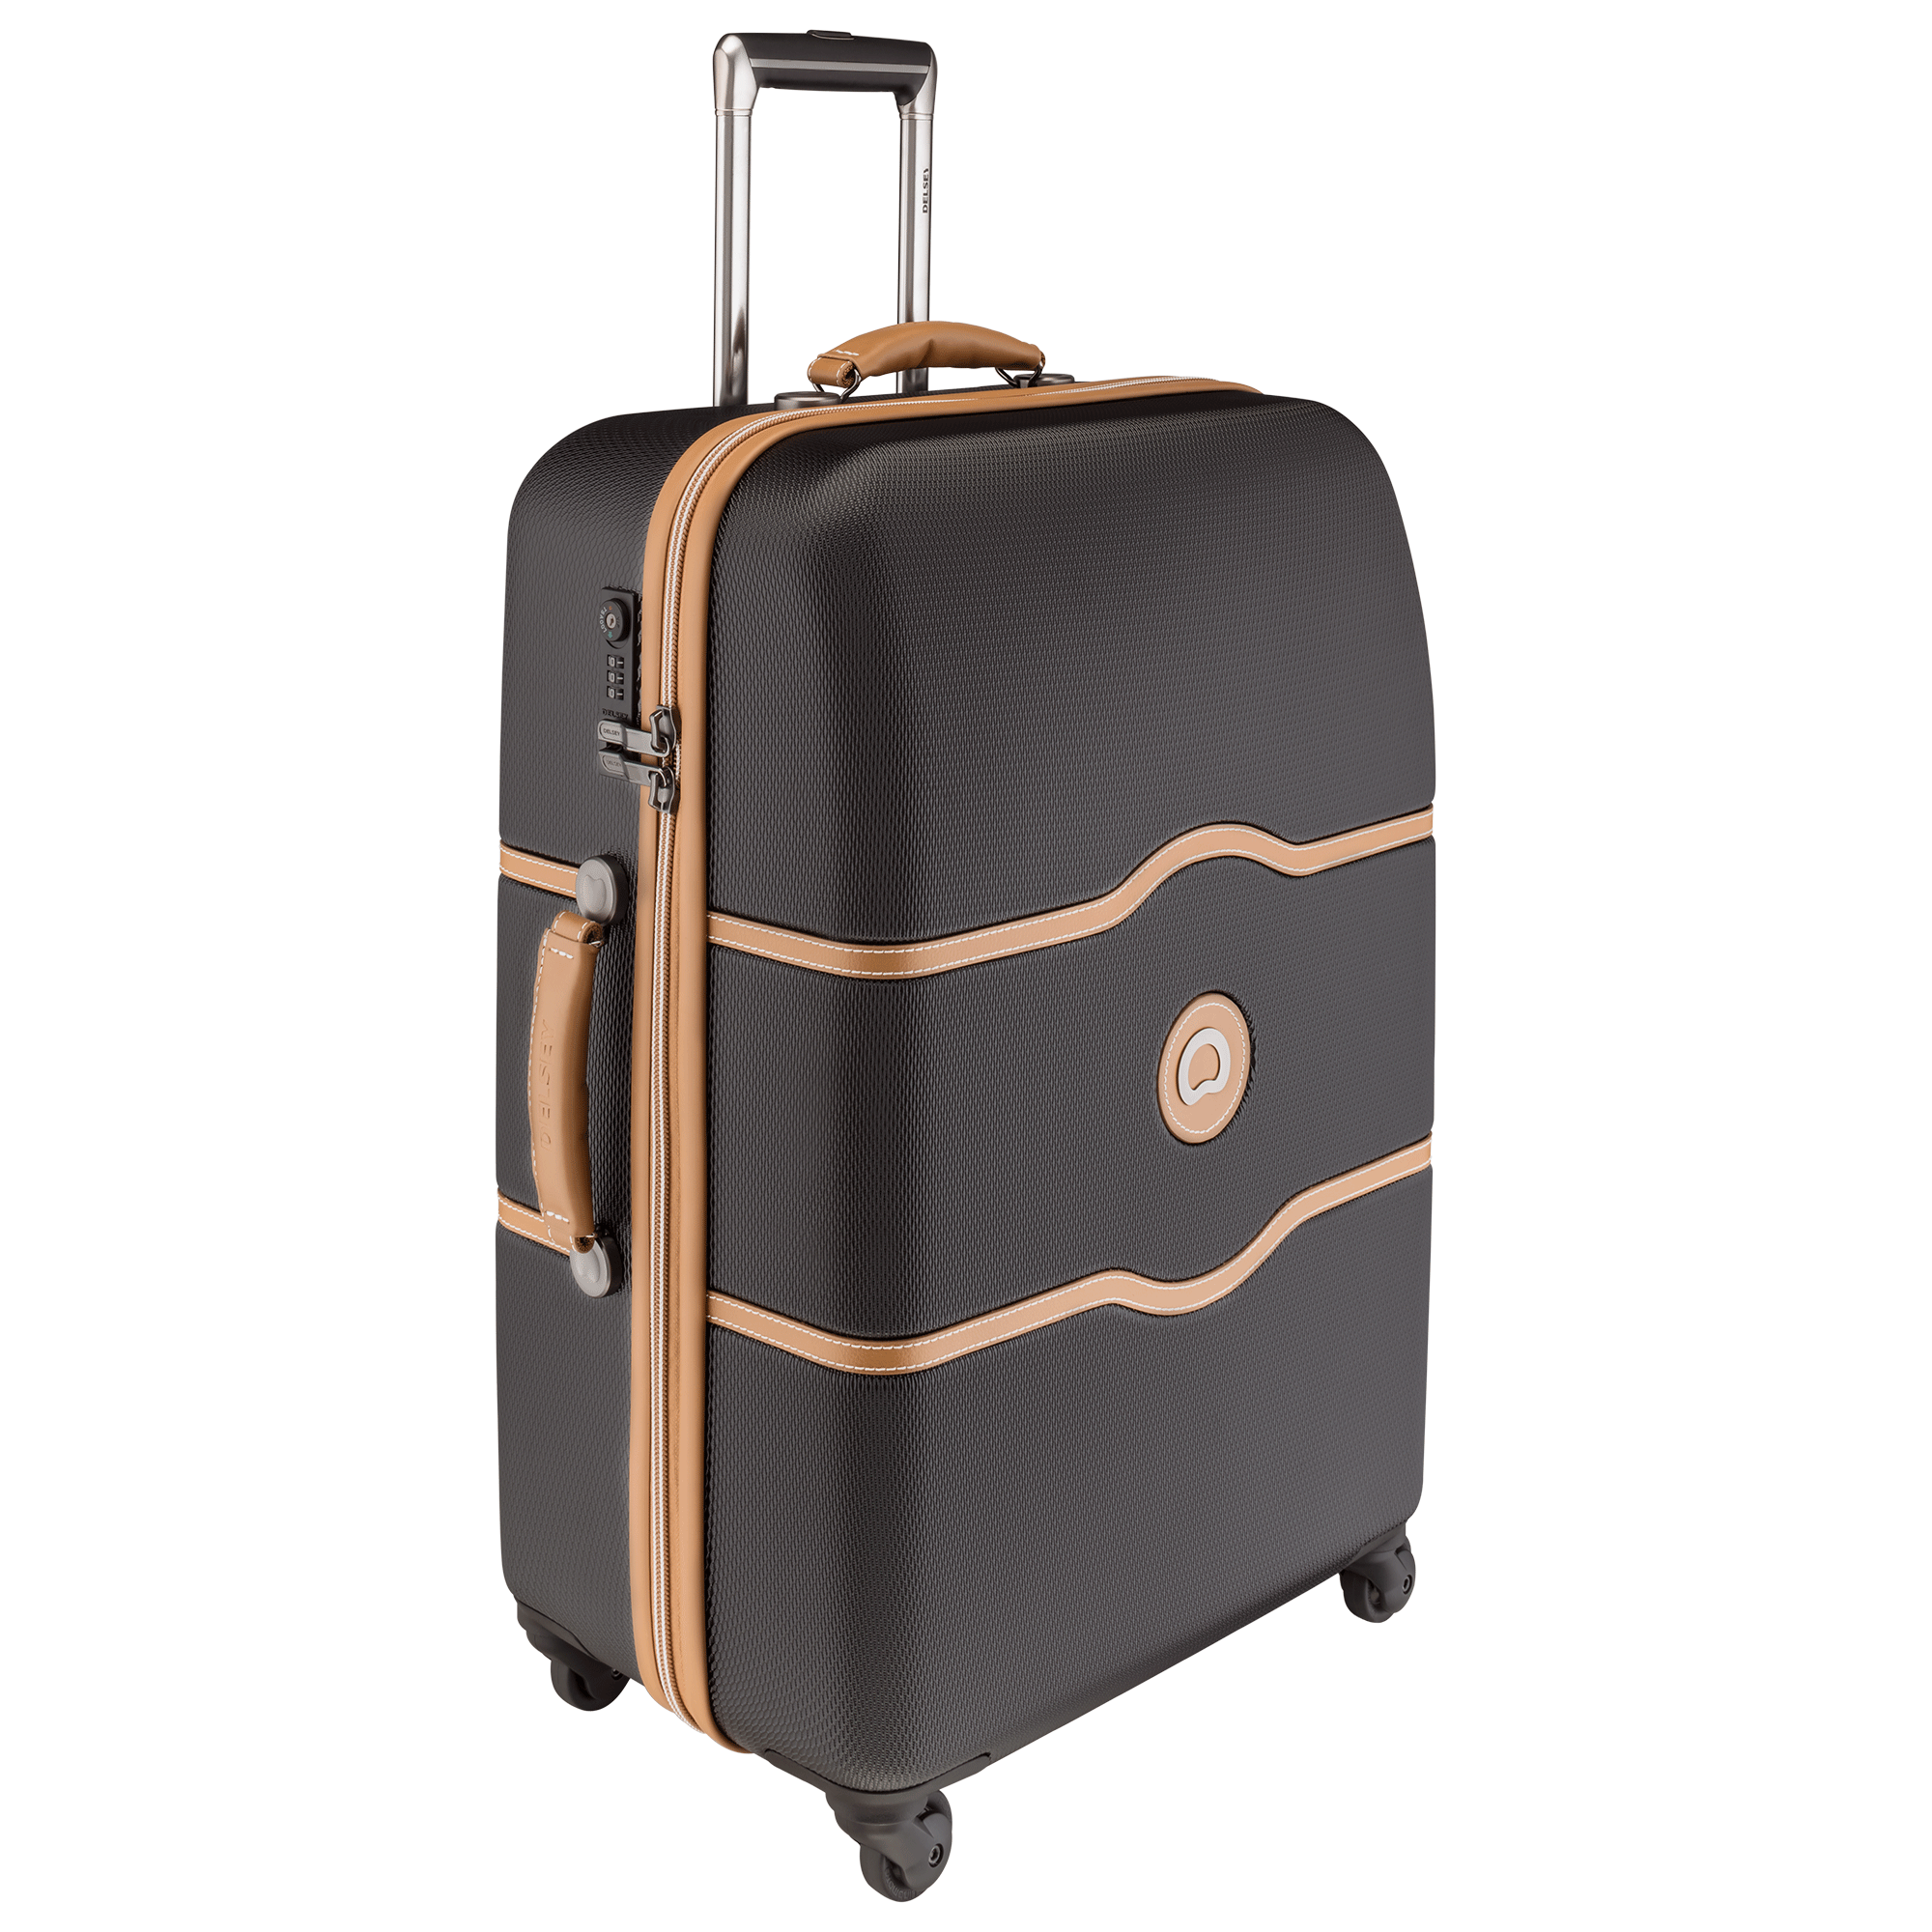 Luggage, suitcase PNG images free download.